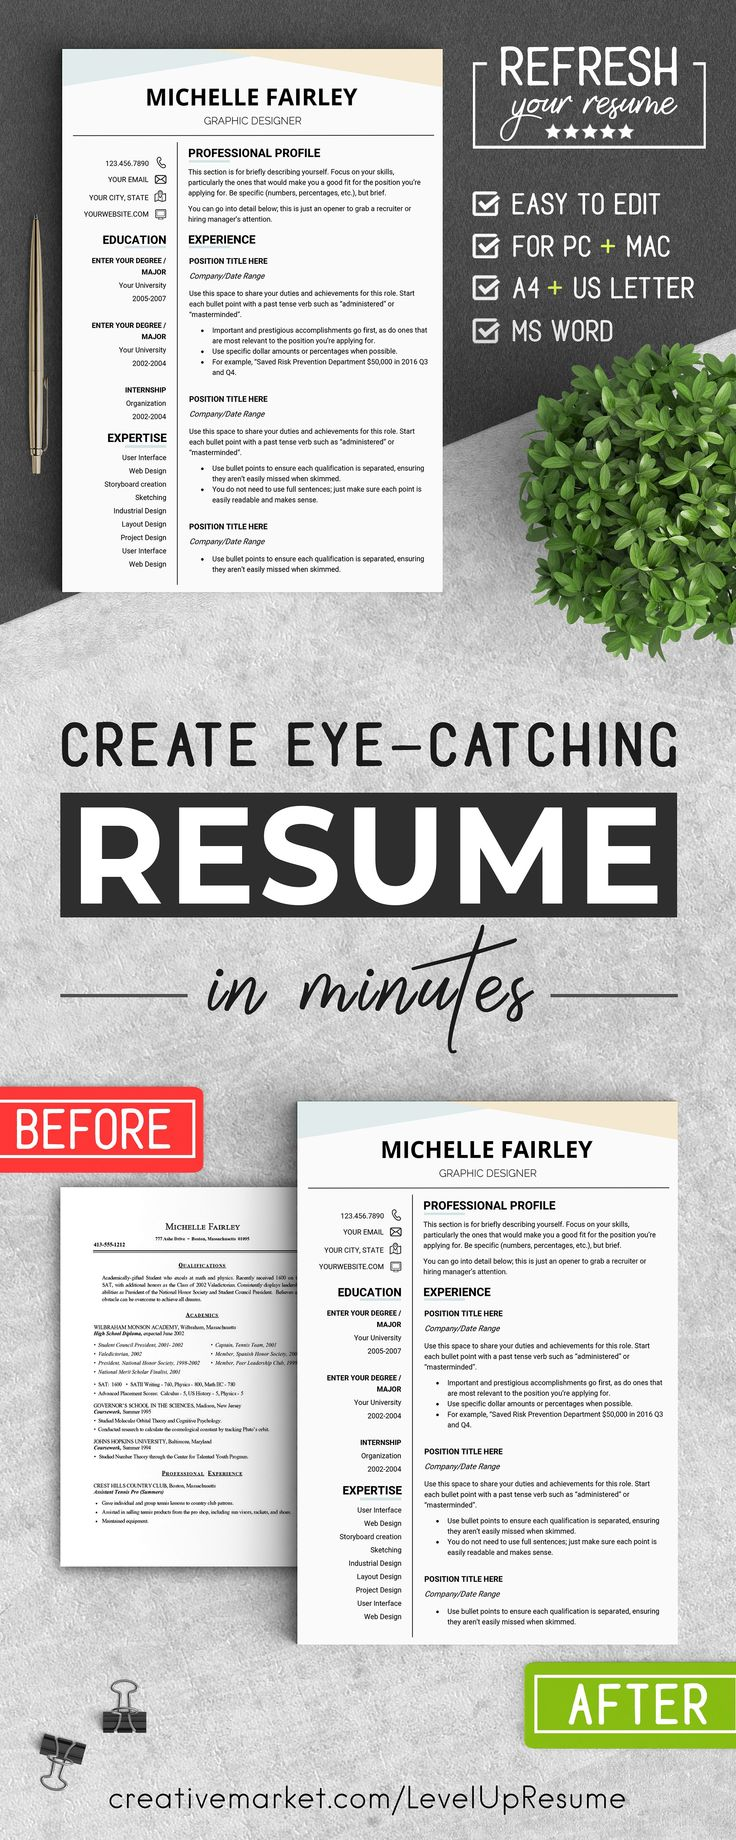 Resume Template For High School Student With No Work Experience%0A Professional RESUME Template  MF by LevelUpResume on  creativemarket  resume   resumetemplate  job